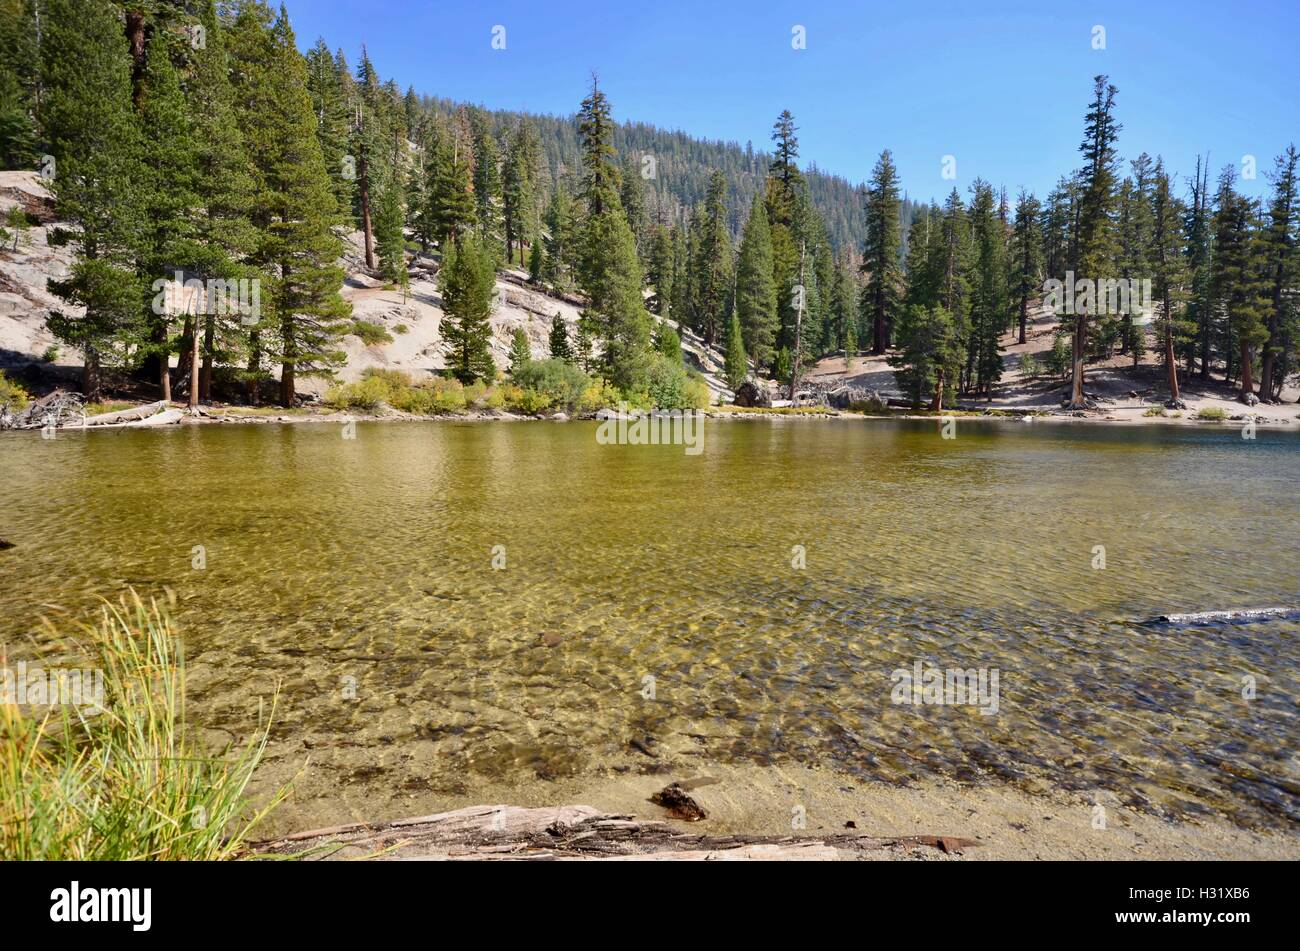 A lake in the Devils Postpile National Monument - Stock Image